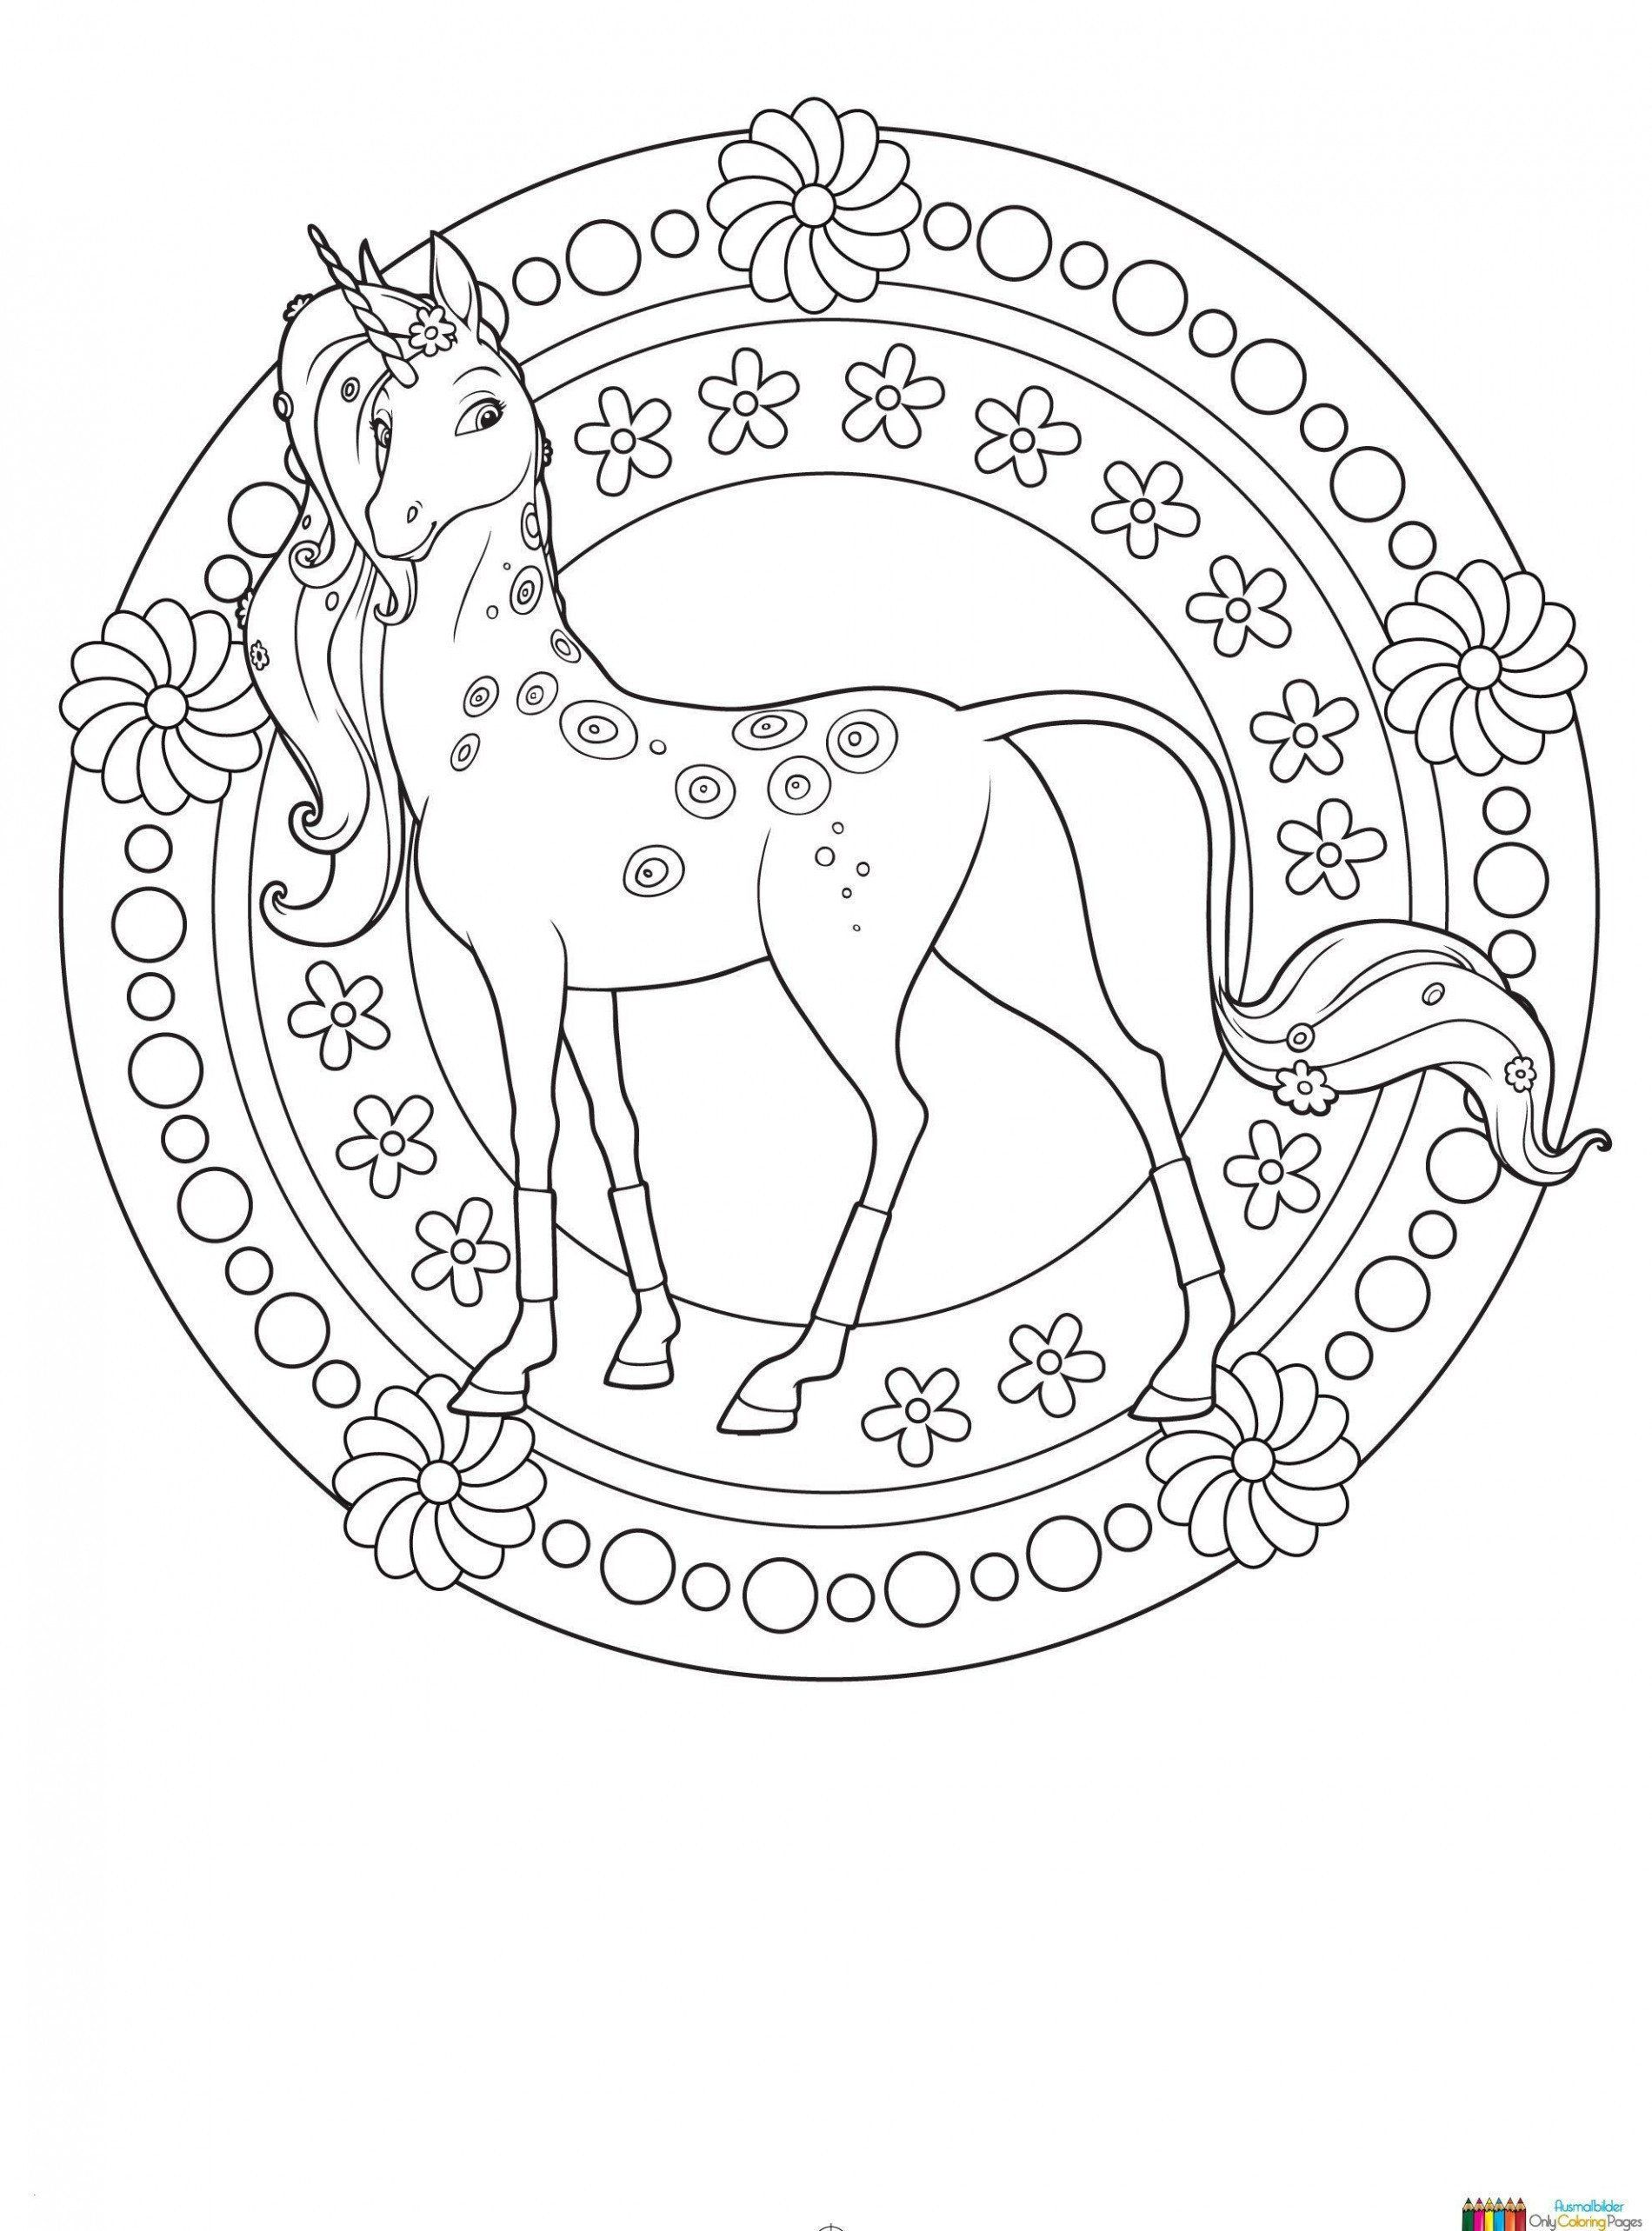 Coloring Pages for Babies Elegant 10 Baby Ohnezahn Ausmalbilder in